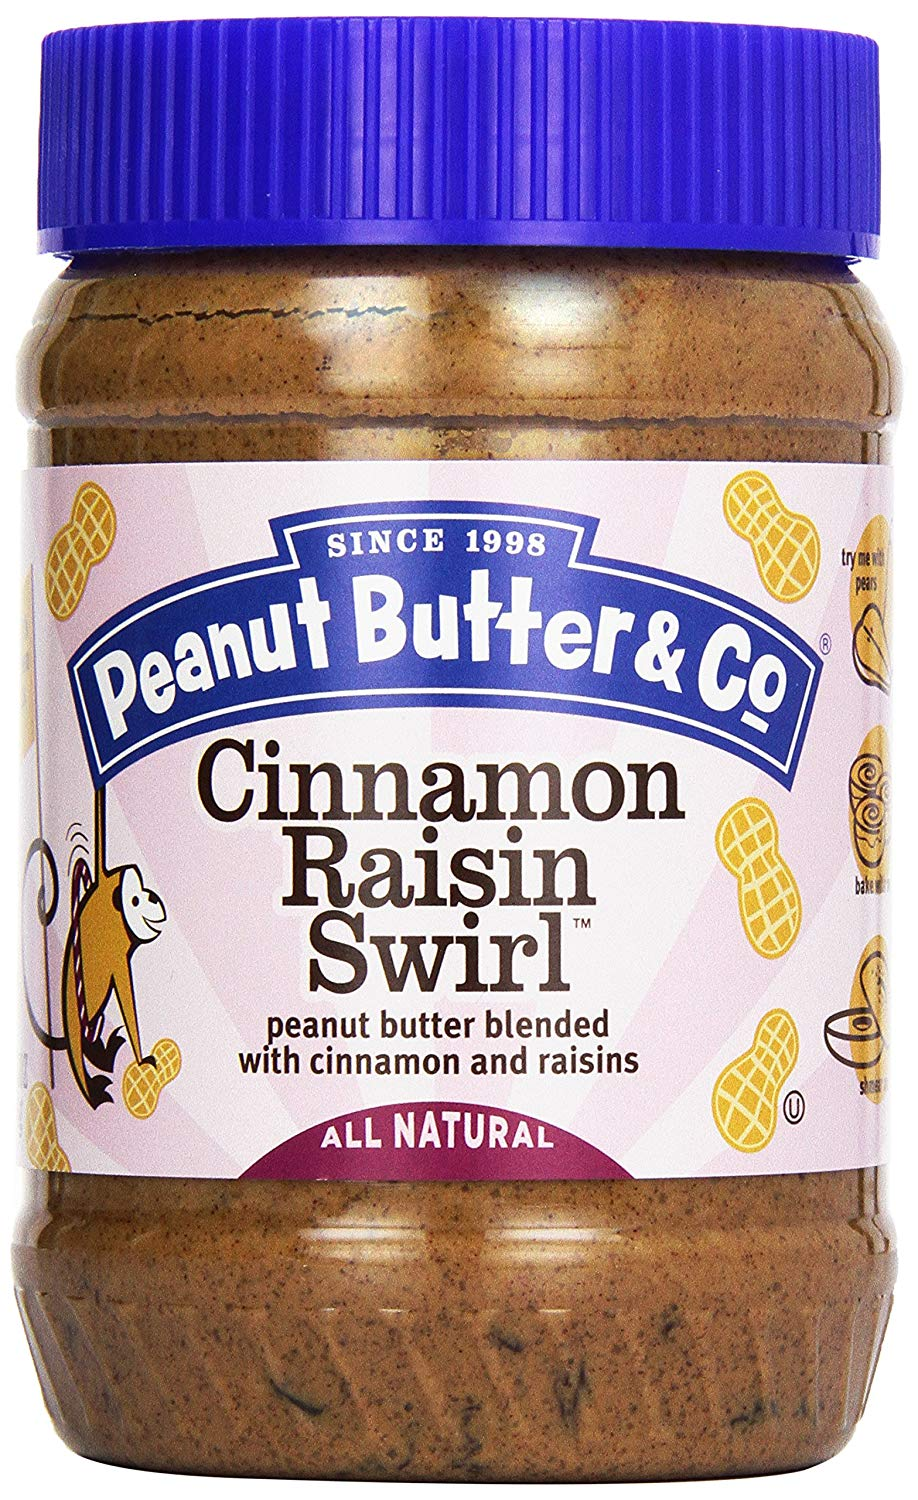 Peanut Butter & Co. Cinnamon Raisin Swirl, 16 oz. (Case of 6)